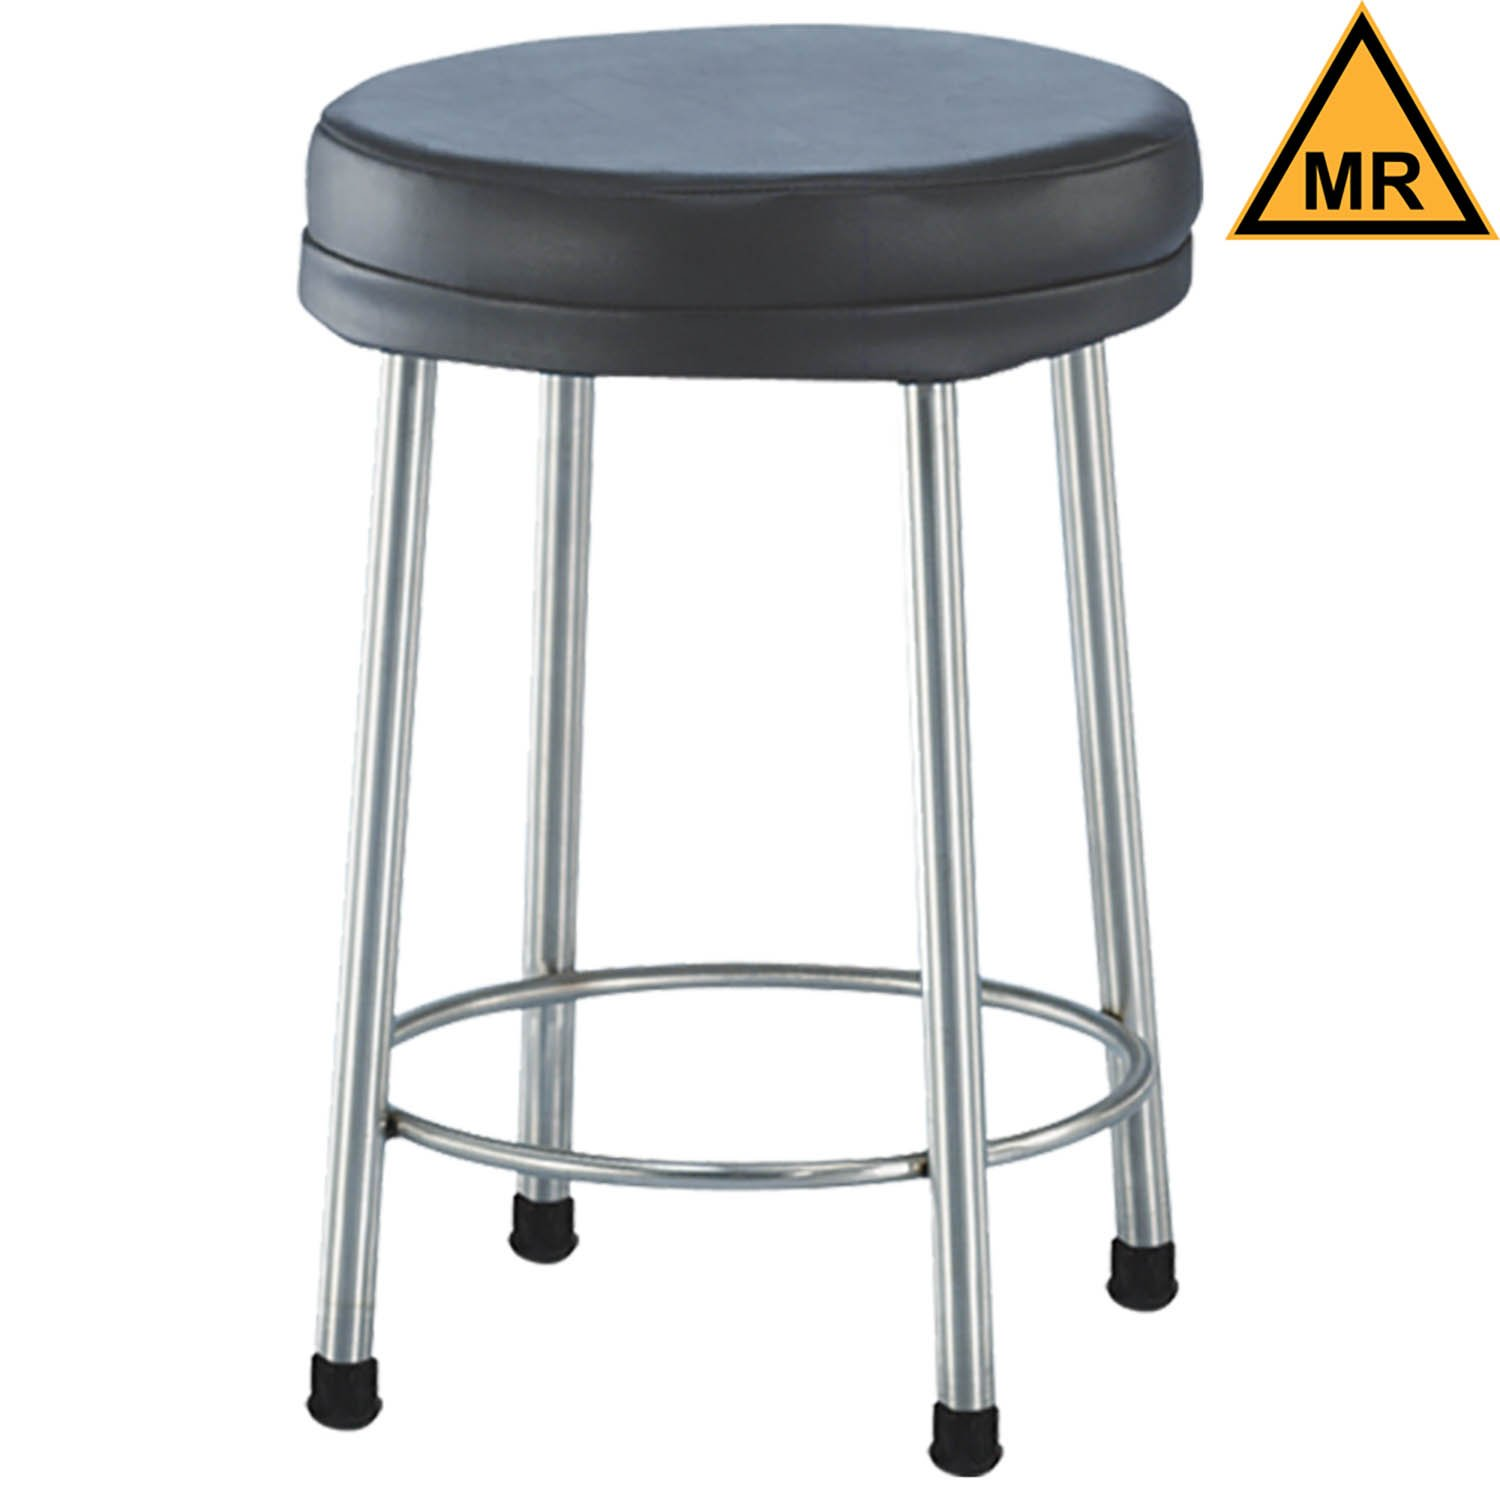 Non-Magnetic Padded Stool with Rubber Tips - 21